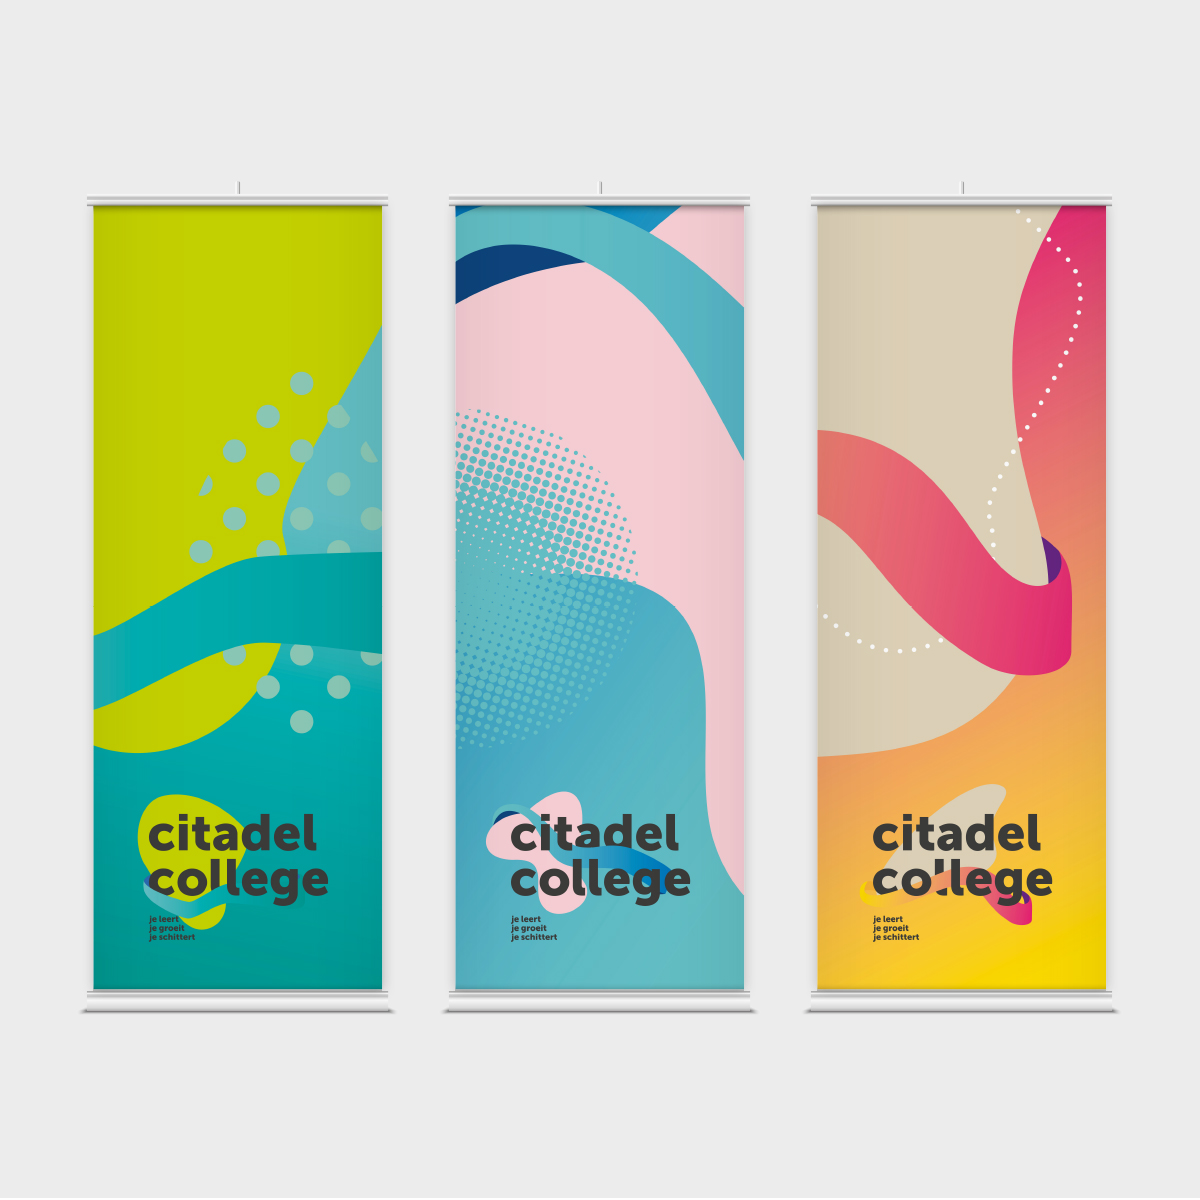 Citadel College | Roll-up banner | Creative Digital Agency Puntkomma Nijmegen